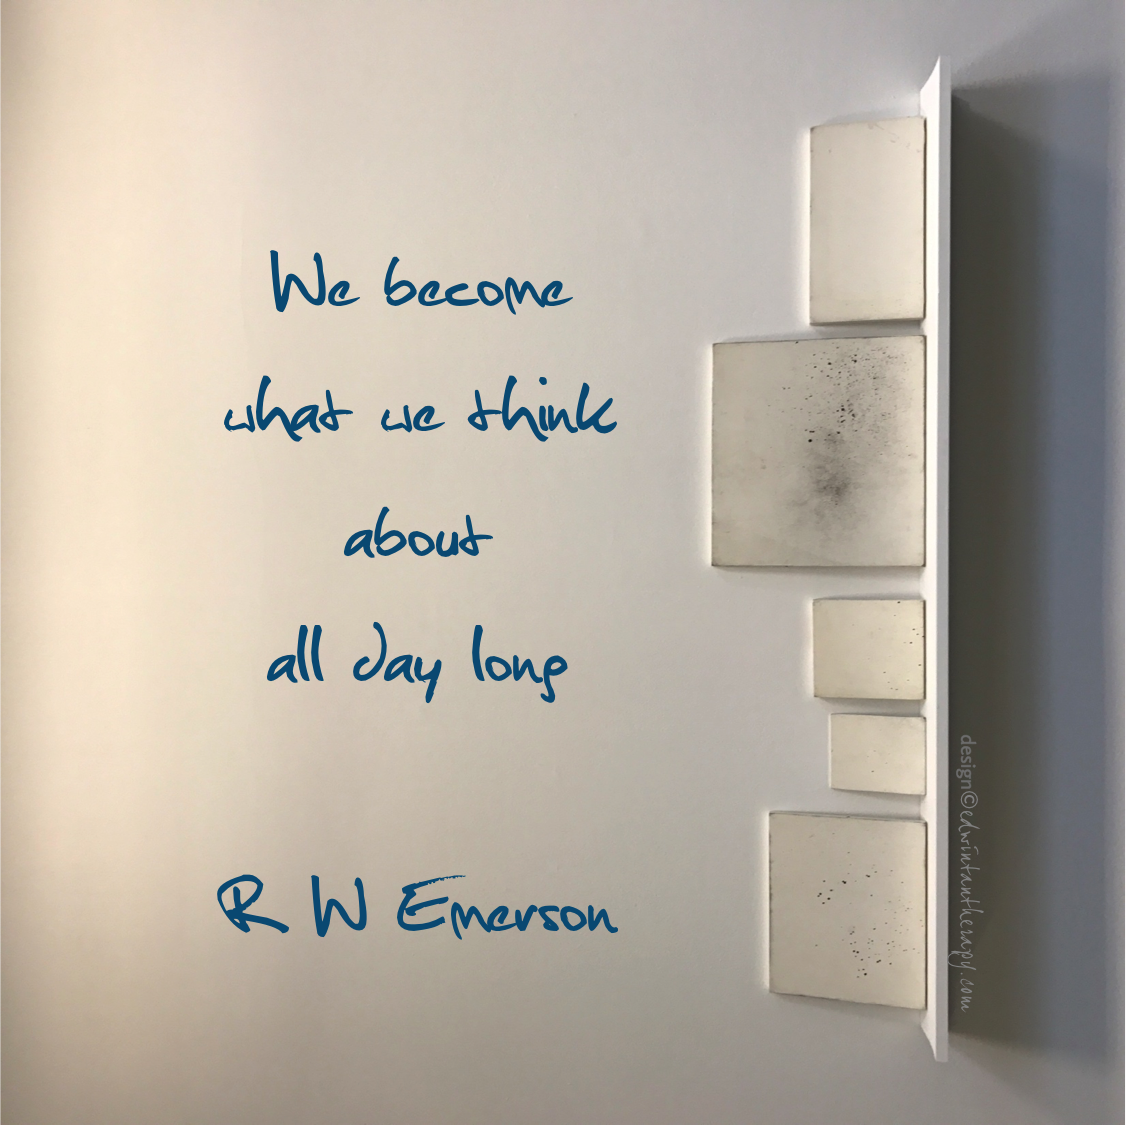 R W Emerson.png